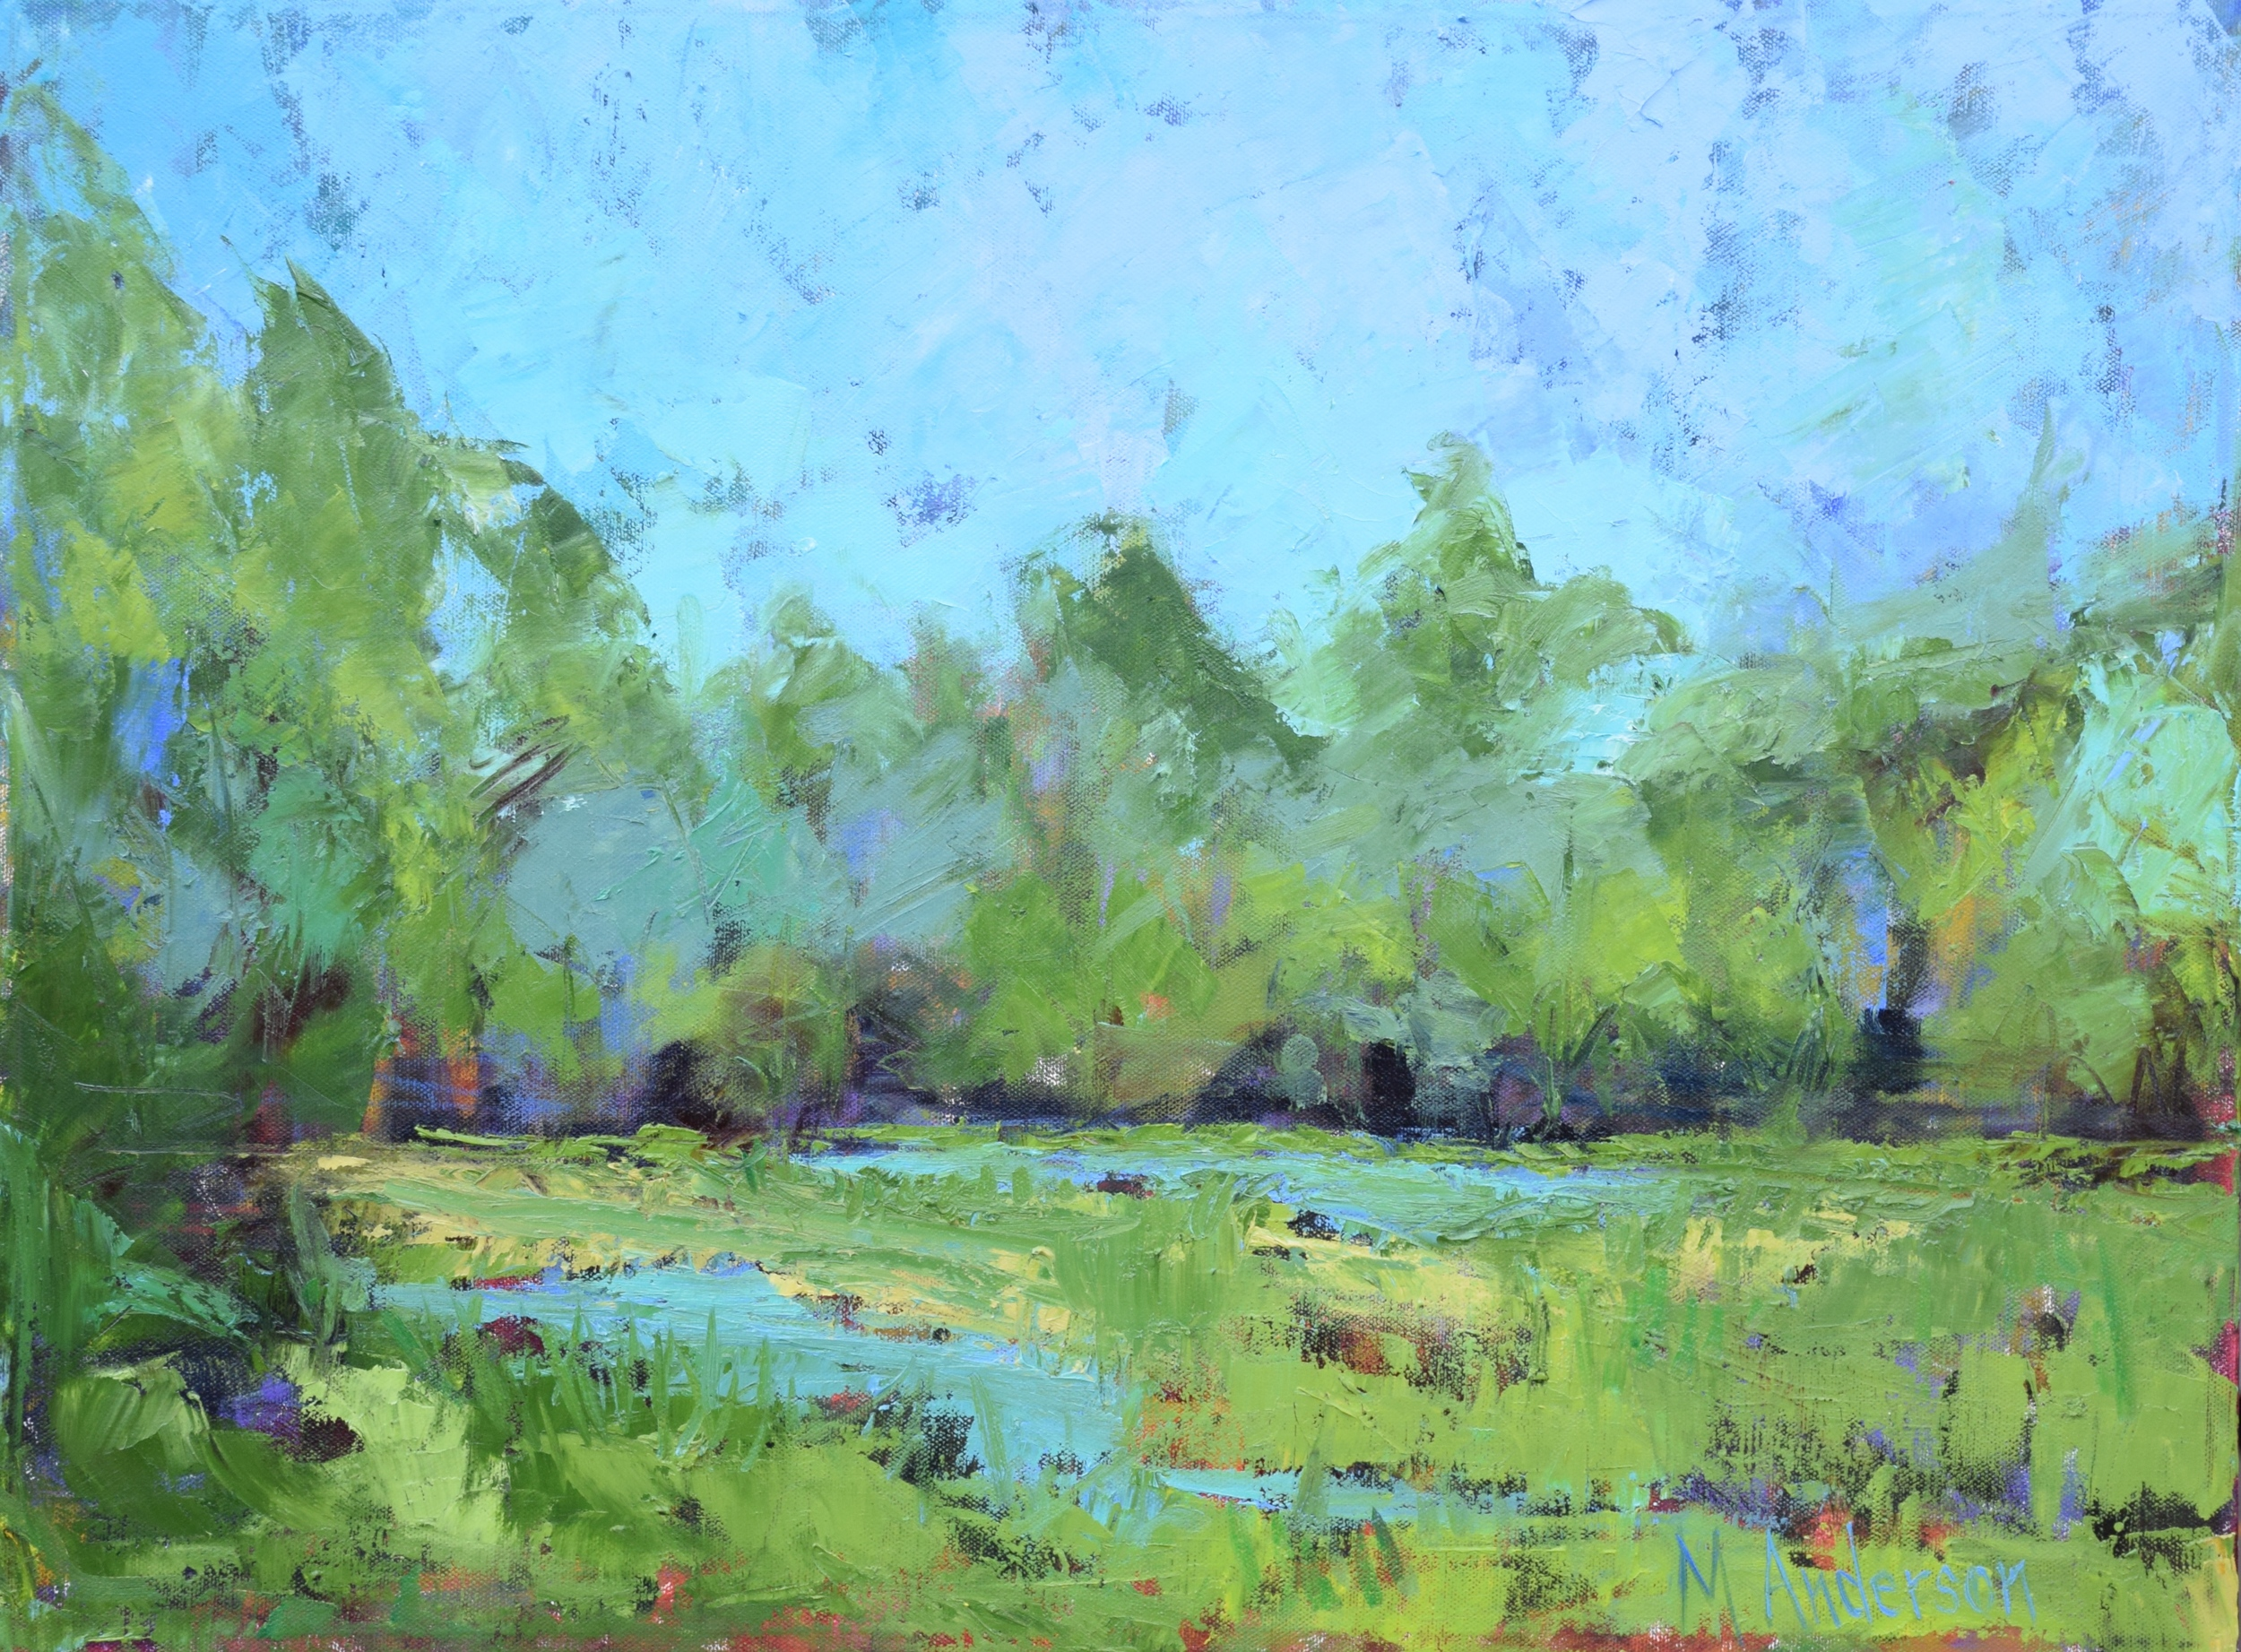 Blue Sky Over Litchfield (18x24 Canvas) - Sold